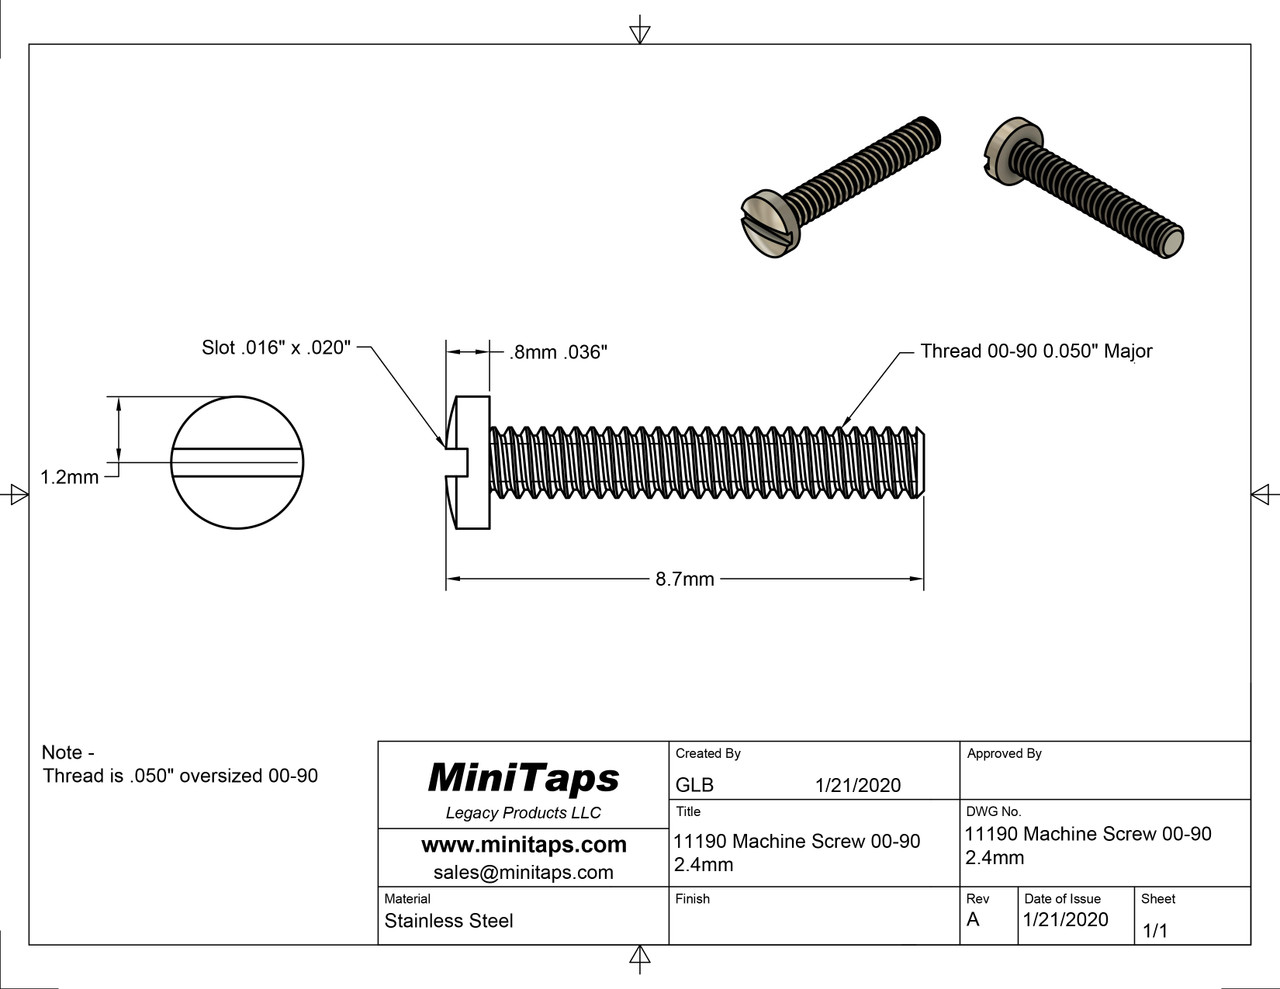 """Machine Screw Oversized Thread 00-90 (0.050"""") Head Diameter 2.5mm / 0.098"""" Overall Length (OAL) is 8.8mm / 0.346"""" Material: Nickel Silver, a premium copper alloy resistant to tarnish and often used in jewelry and eye wear. Part Color Finish is Silver Matching/Mating Hex Nut #11120. Please note this has an over-sized thread major of .050"""" vs the standard thread major of .046"""" Price is for 100 count package"""